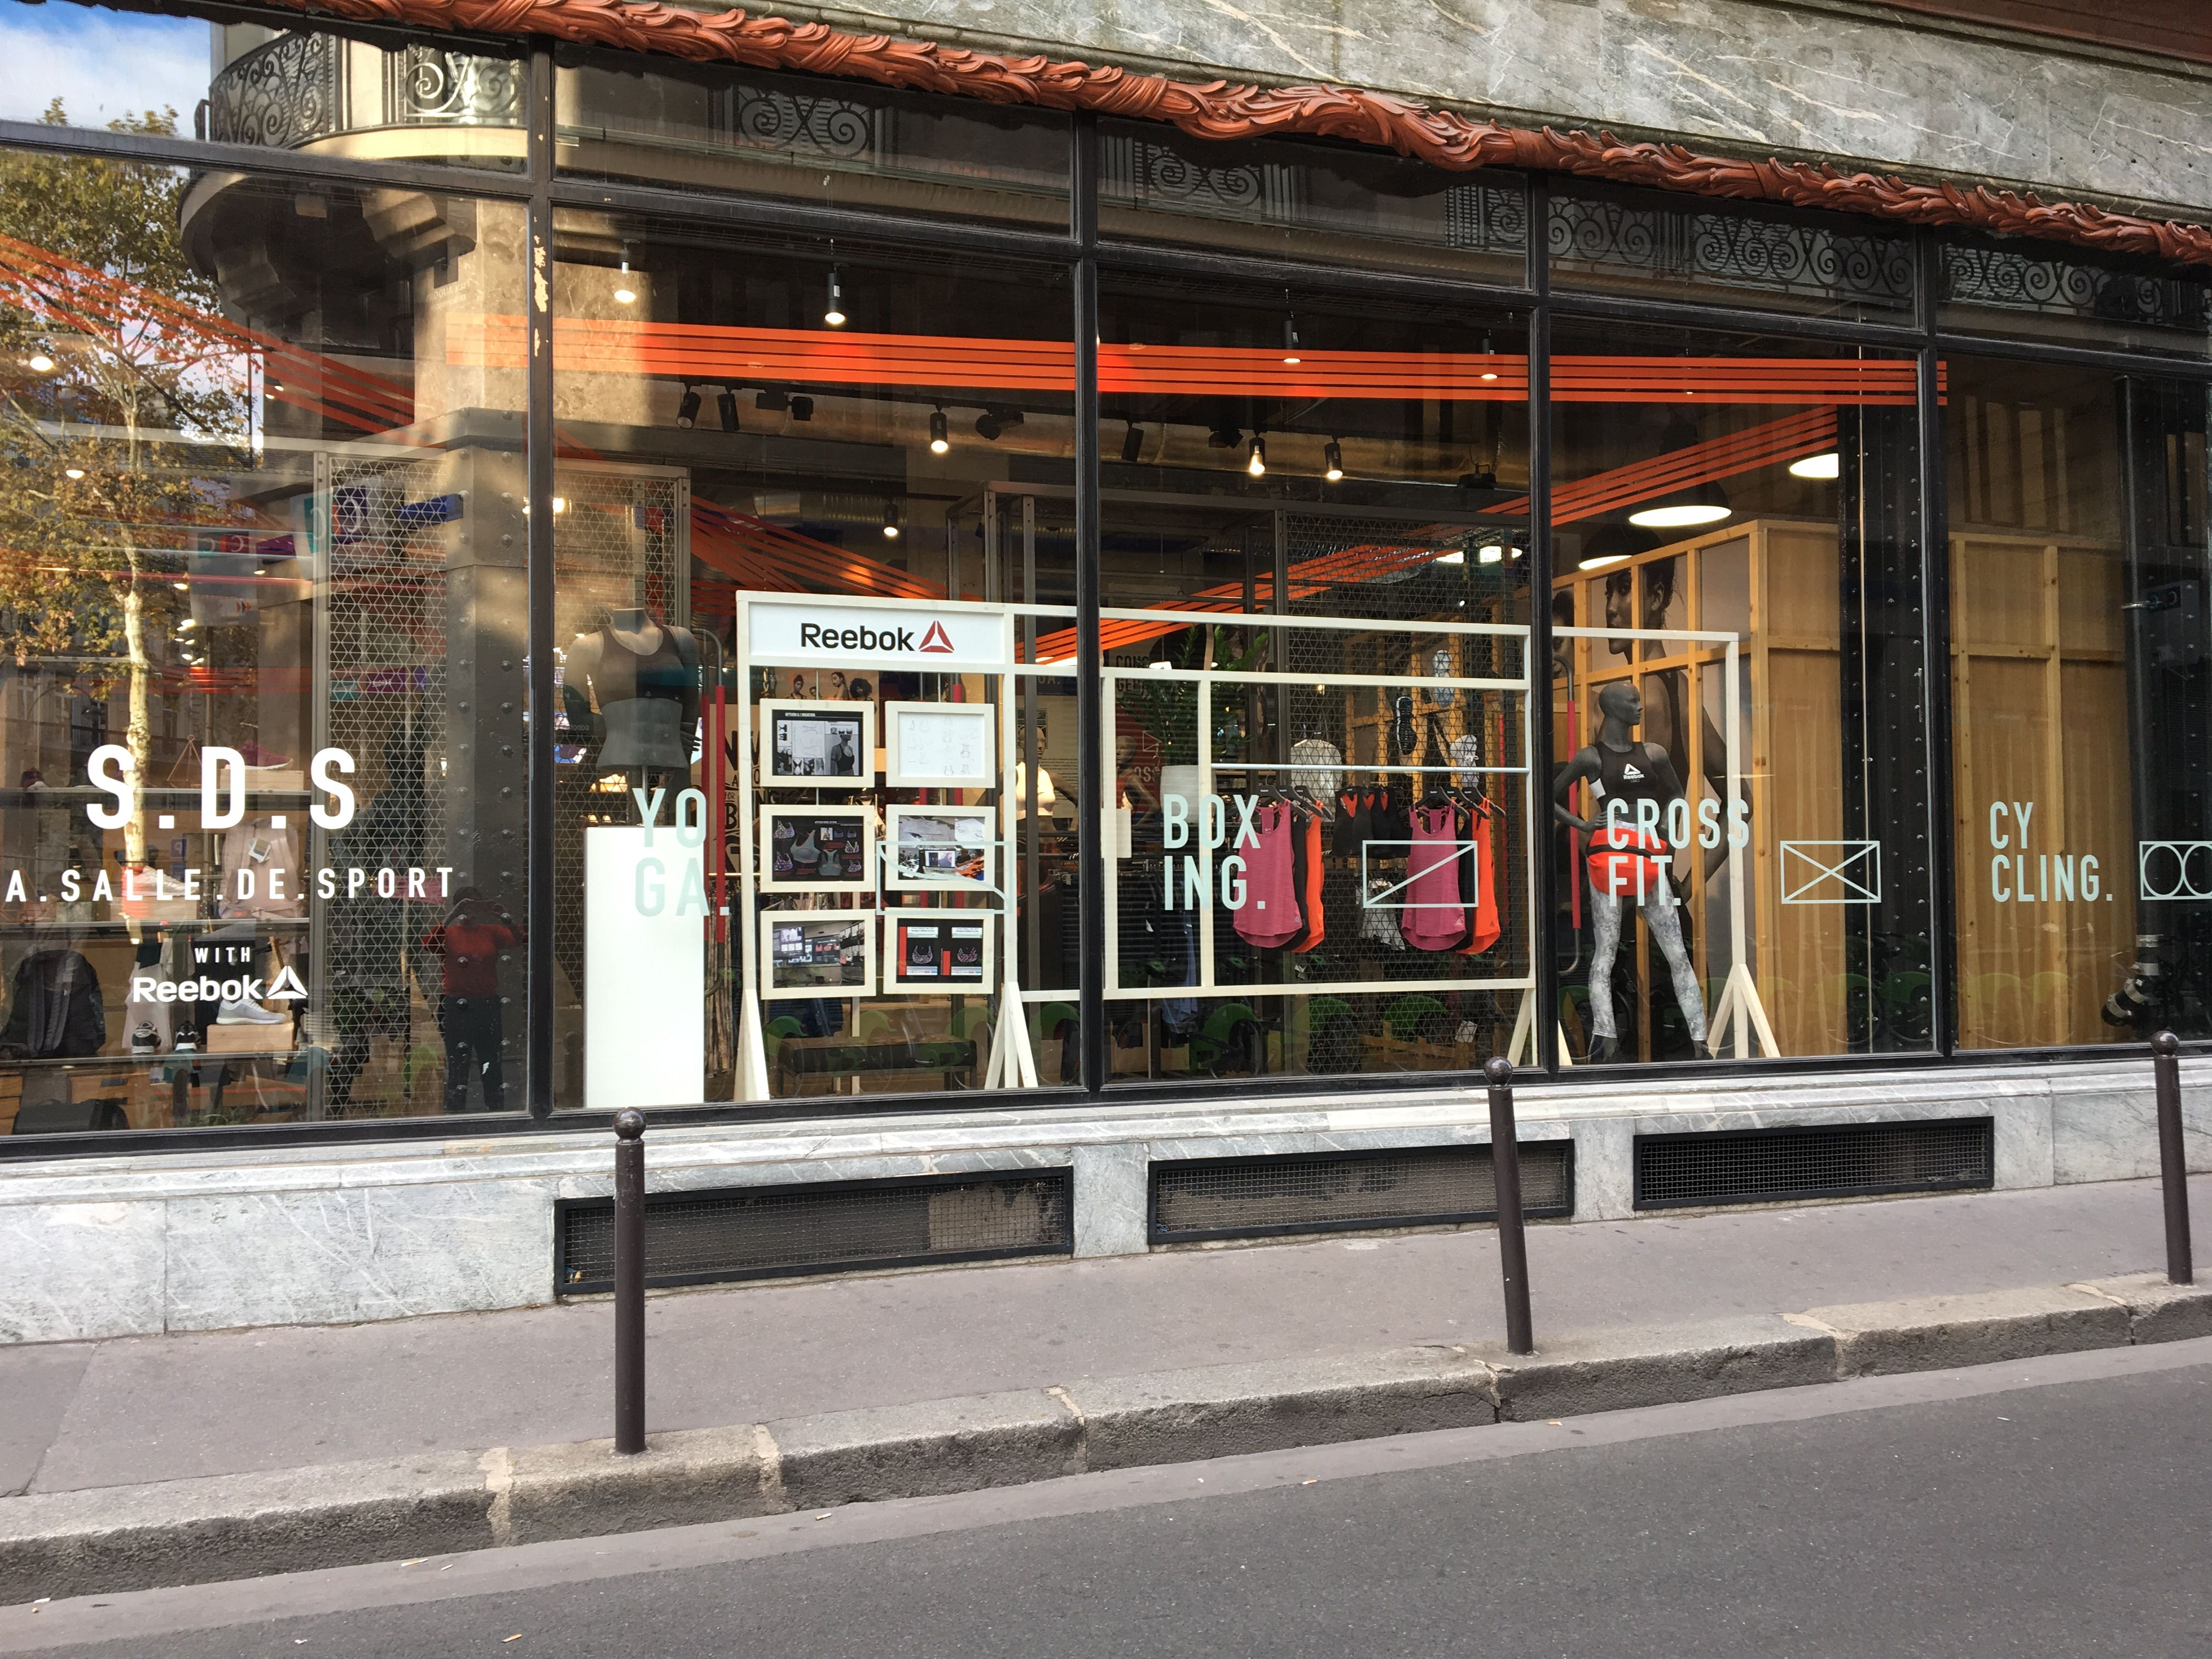 VM refresh at the Reebok store in La Salle de Sport Paris